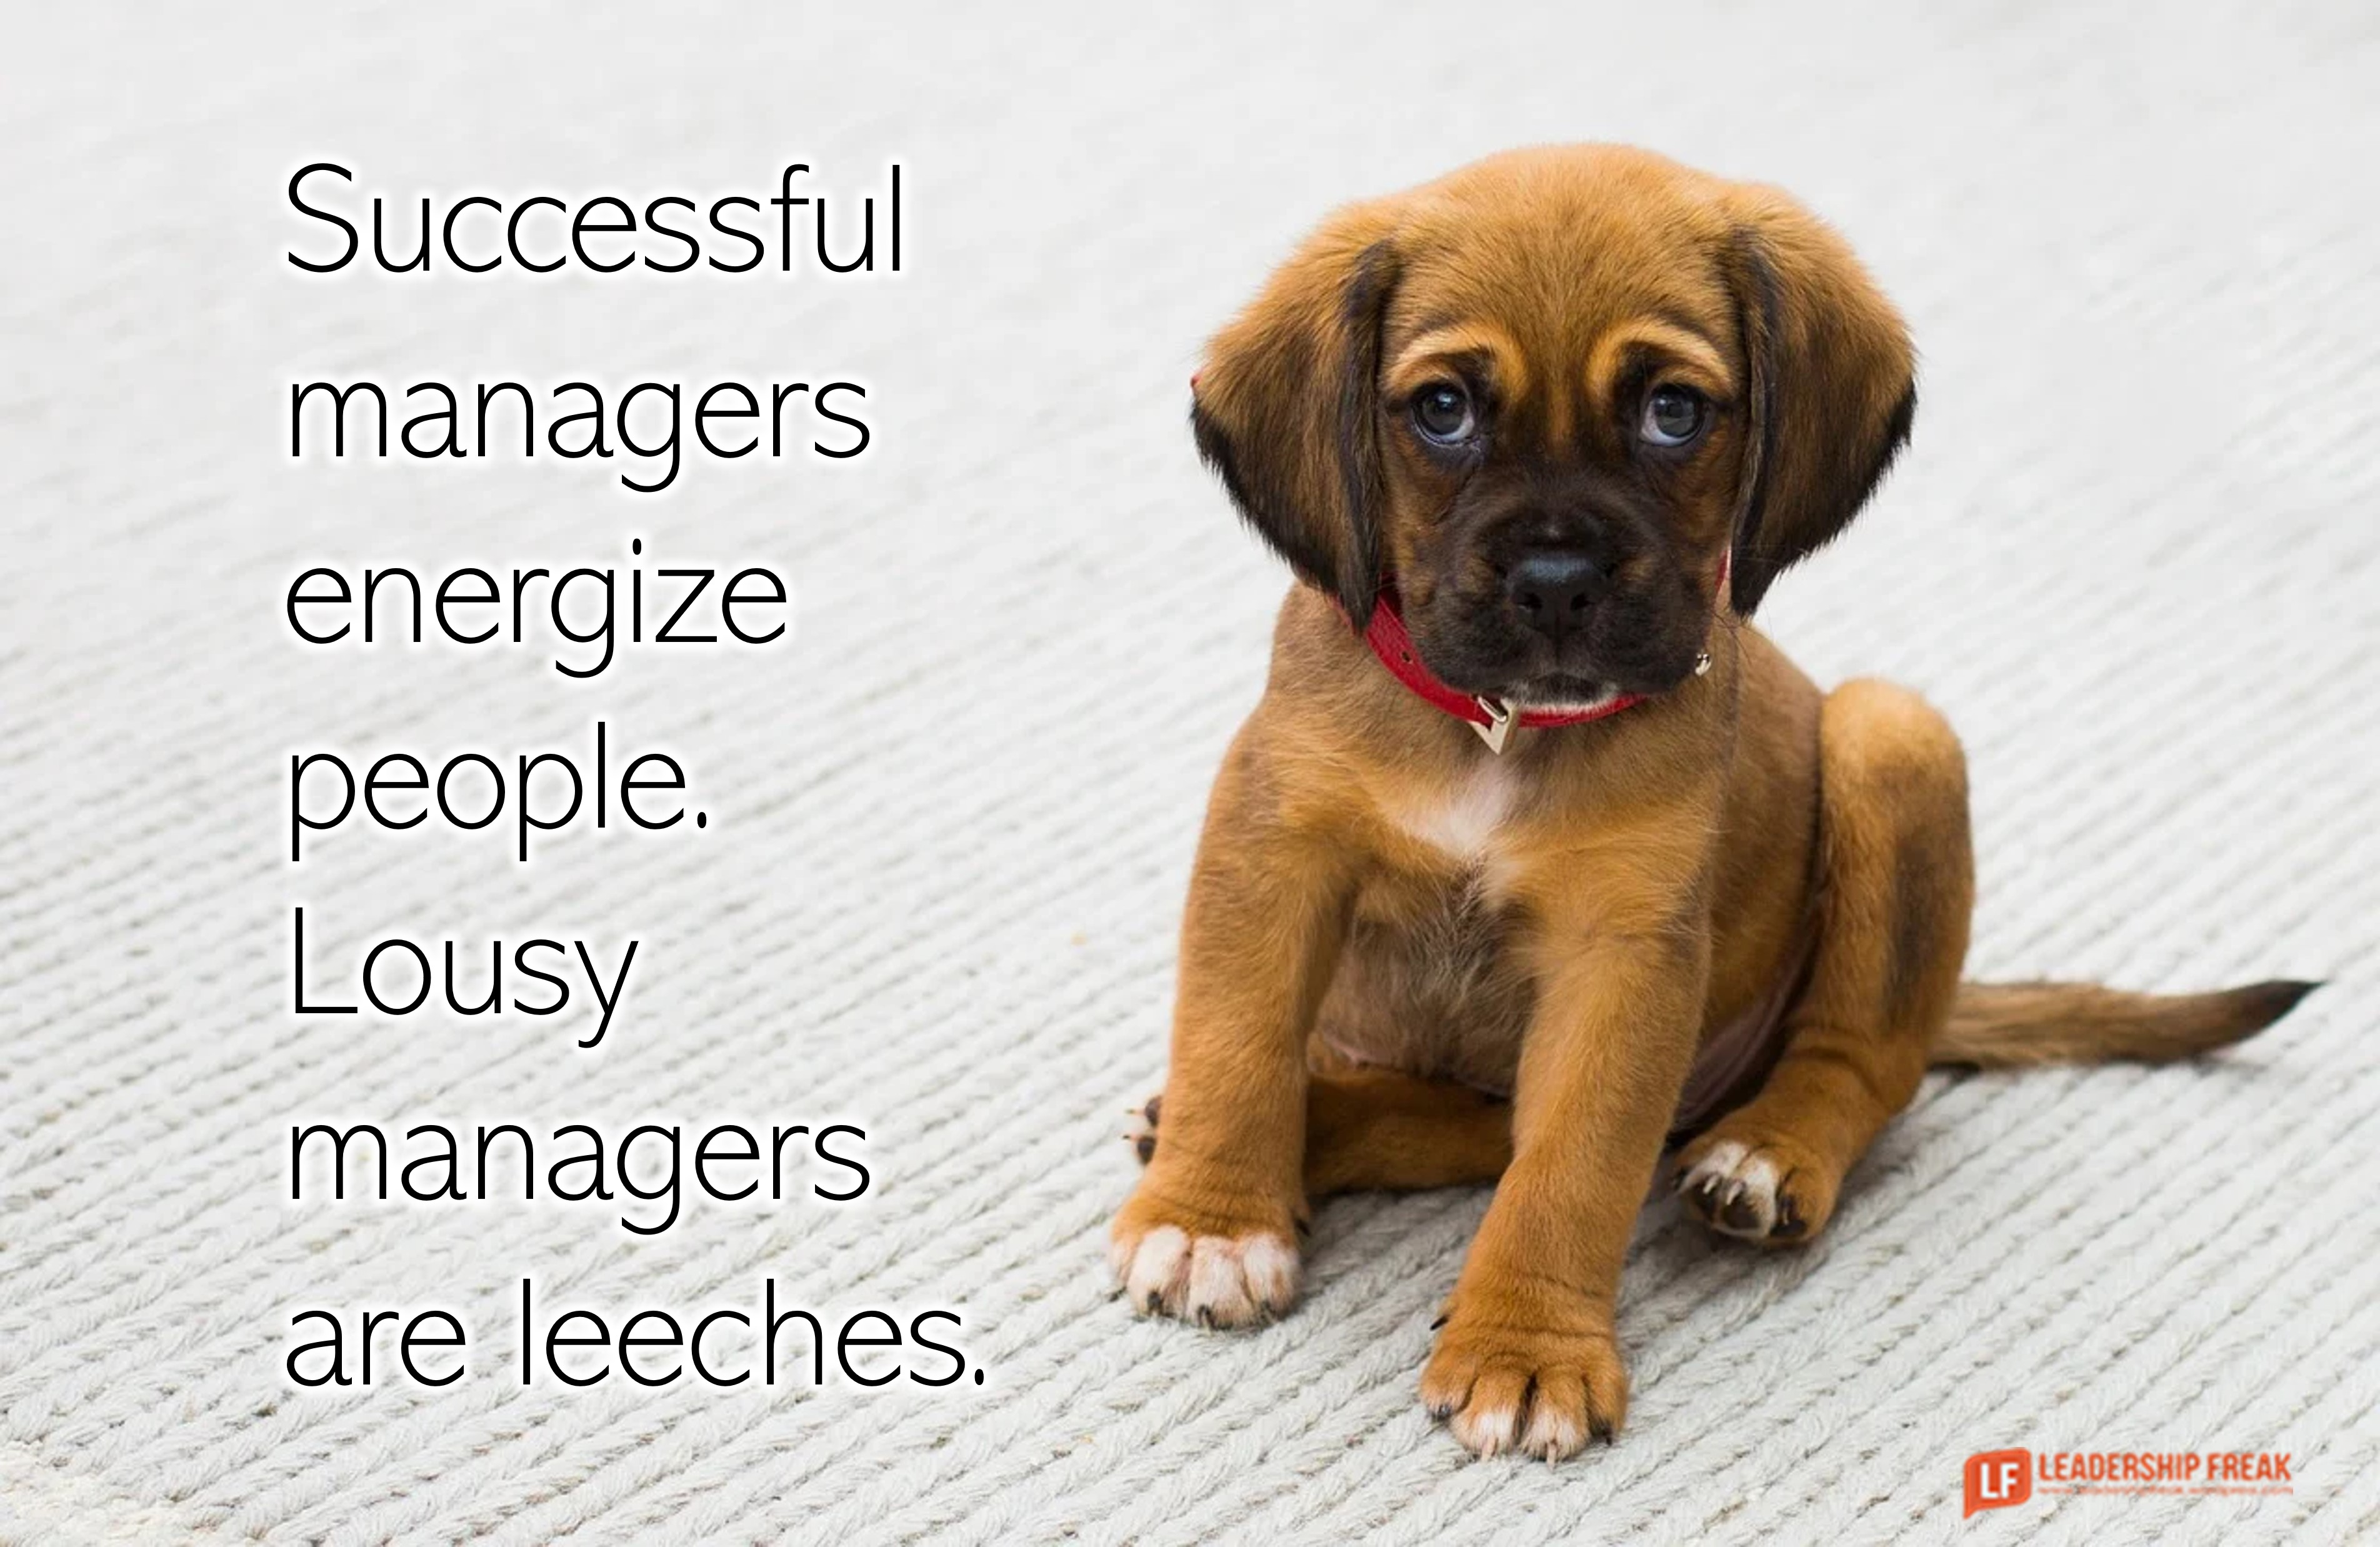 Sad puppy.  Successful managers energize people. Lousy managers are leeches.